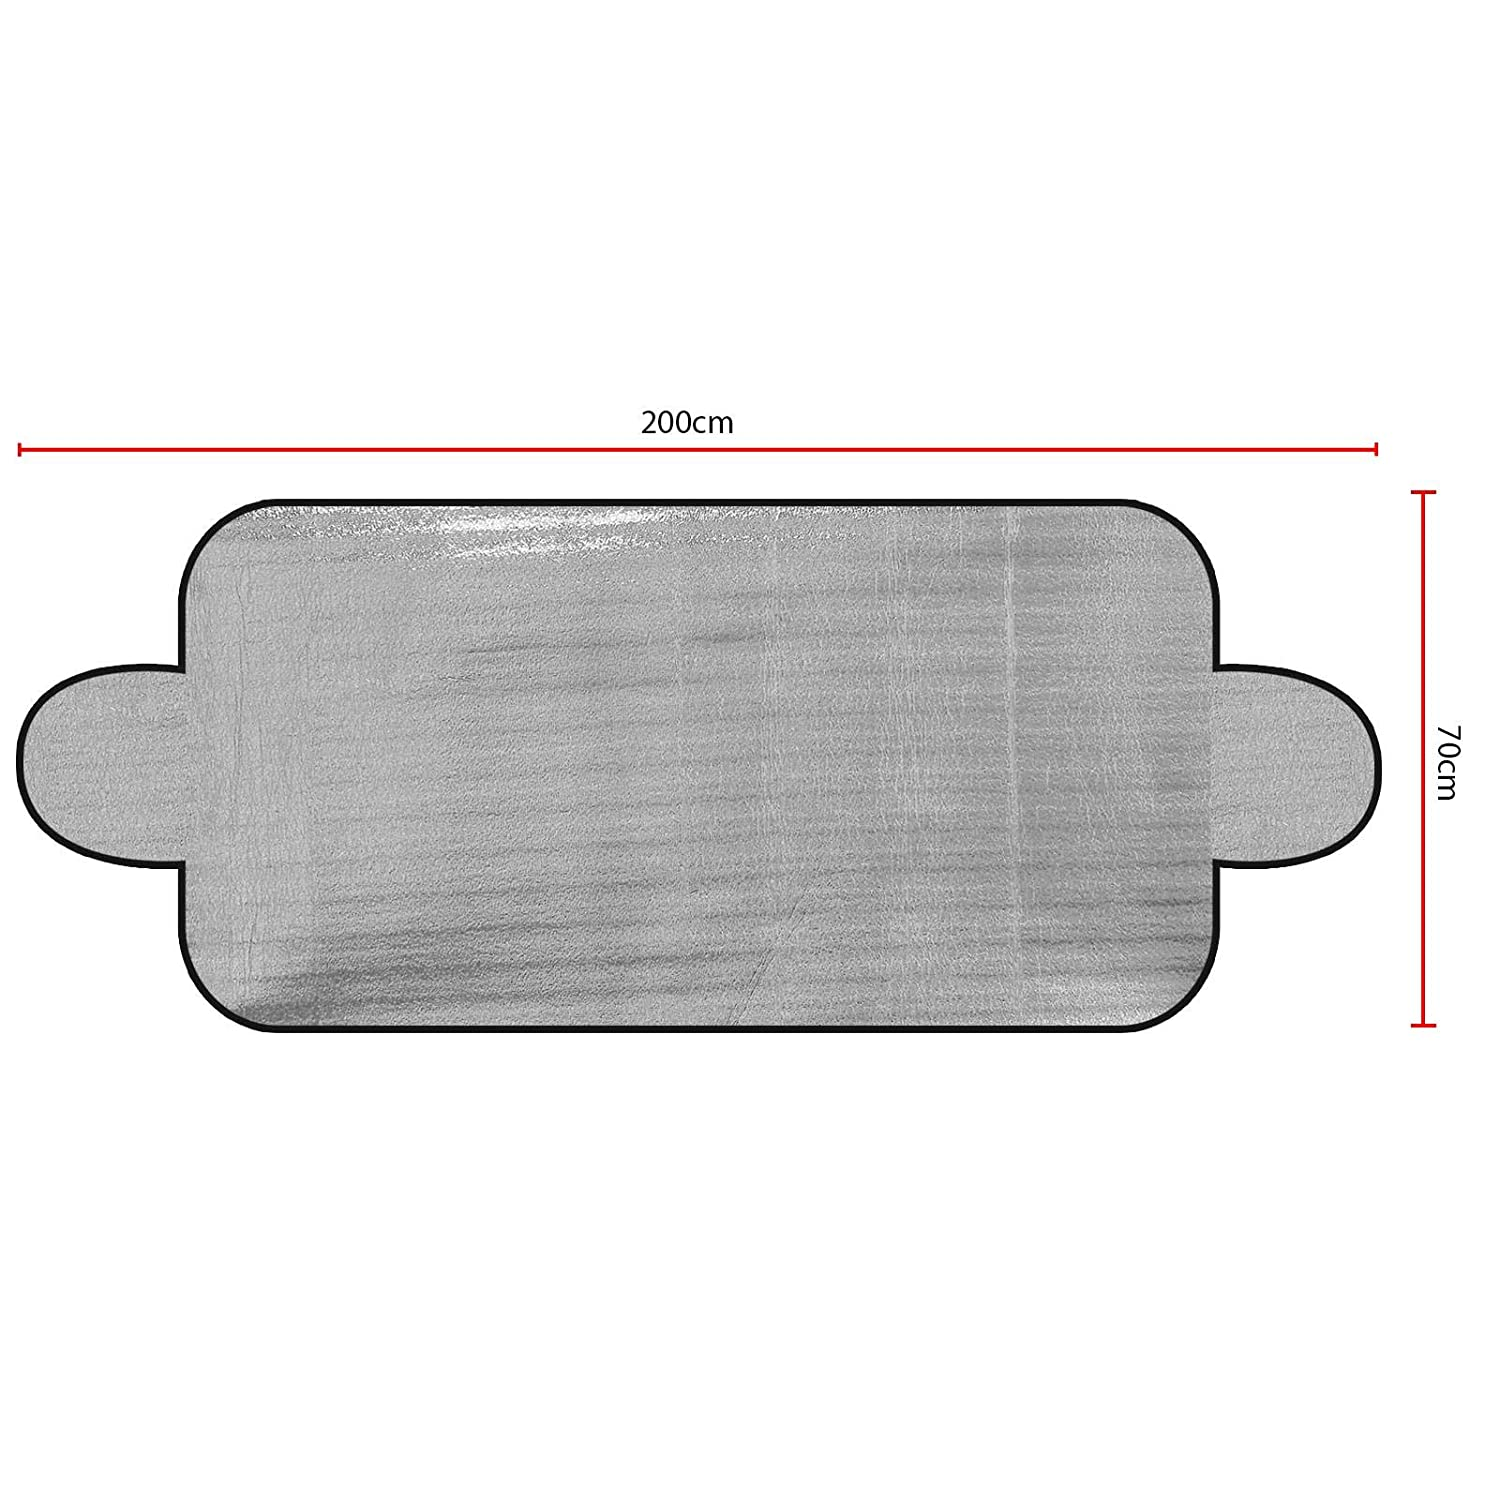 ASAB Large 200x70cm Car Windscreen Sun Shade UV Protector Heat Resistant Reflective Block Van Vehicle Front Window Foldable Foil Cover Thermal Shades Cars